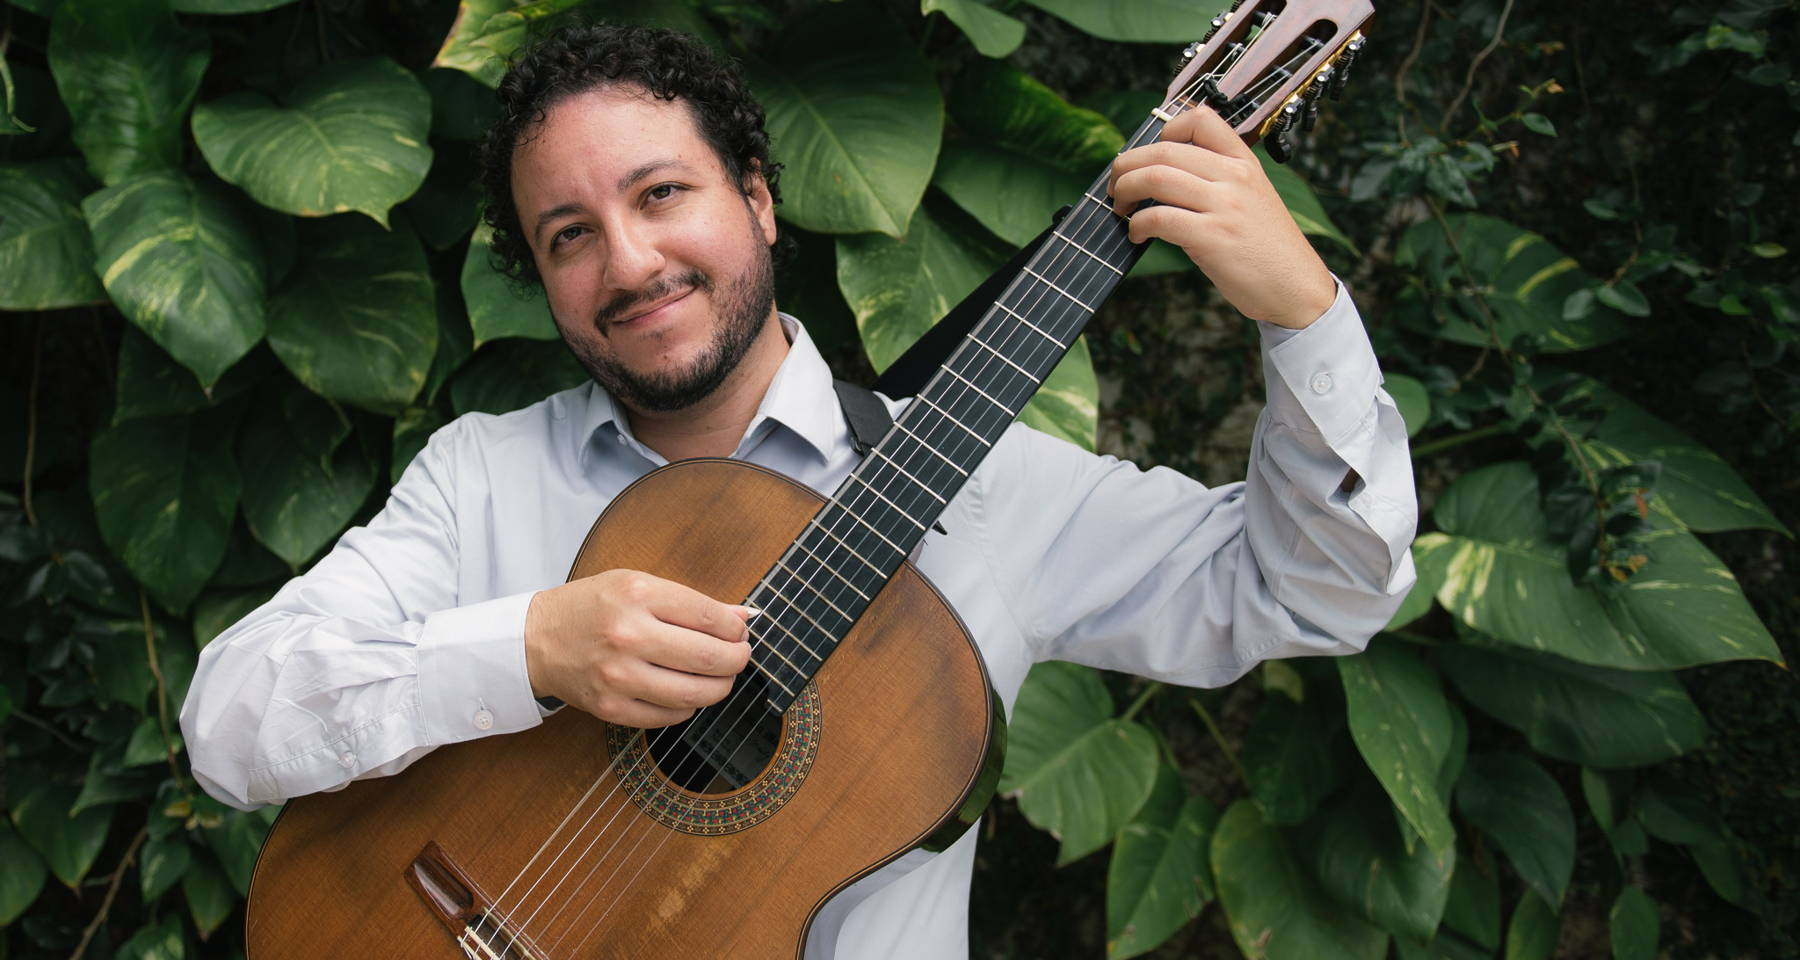 Alvaro Henrique performs Brazilian Guitar Music (with a touch of Spain)